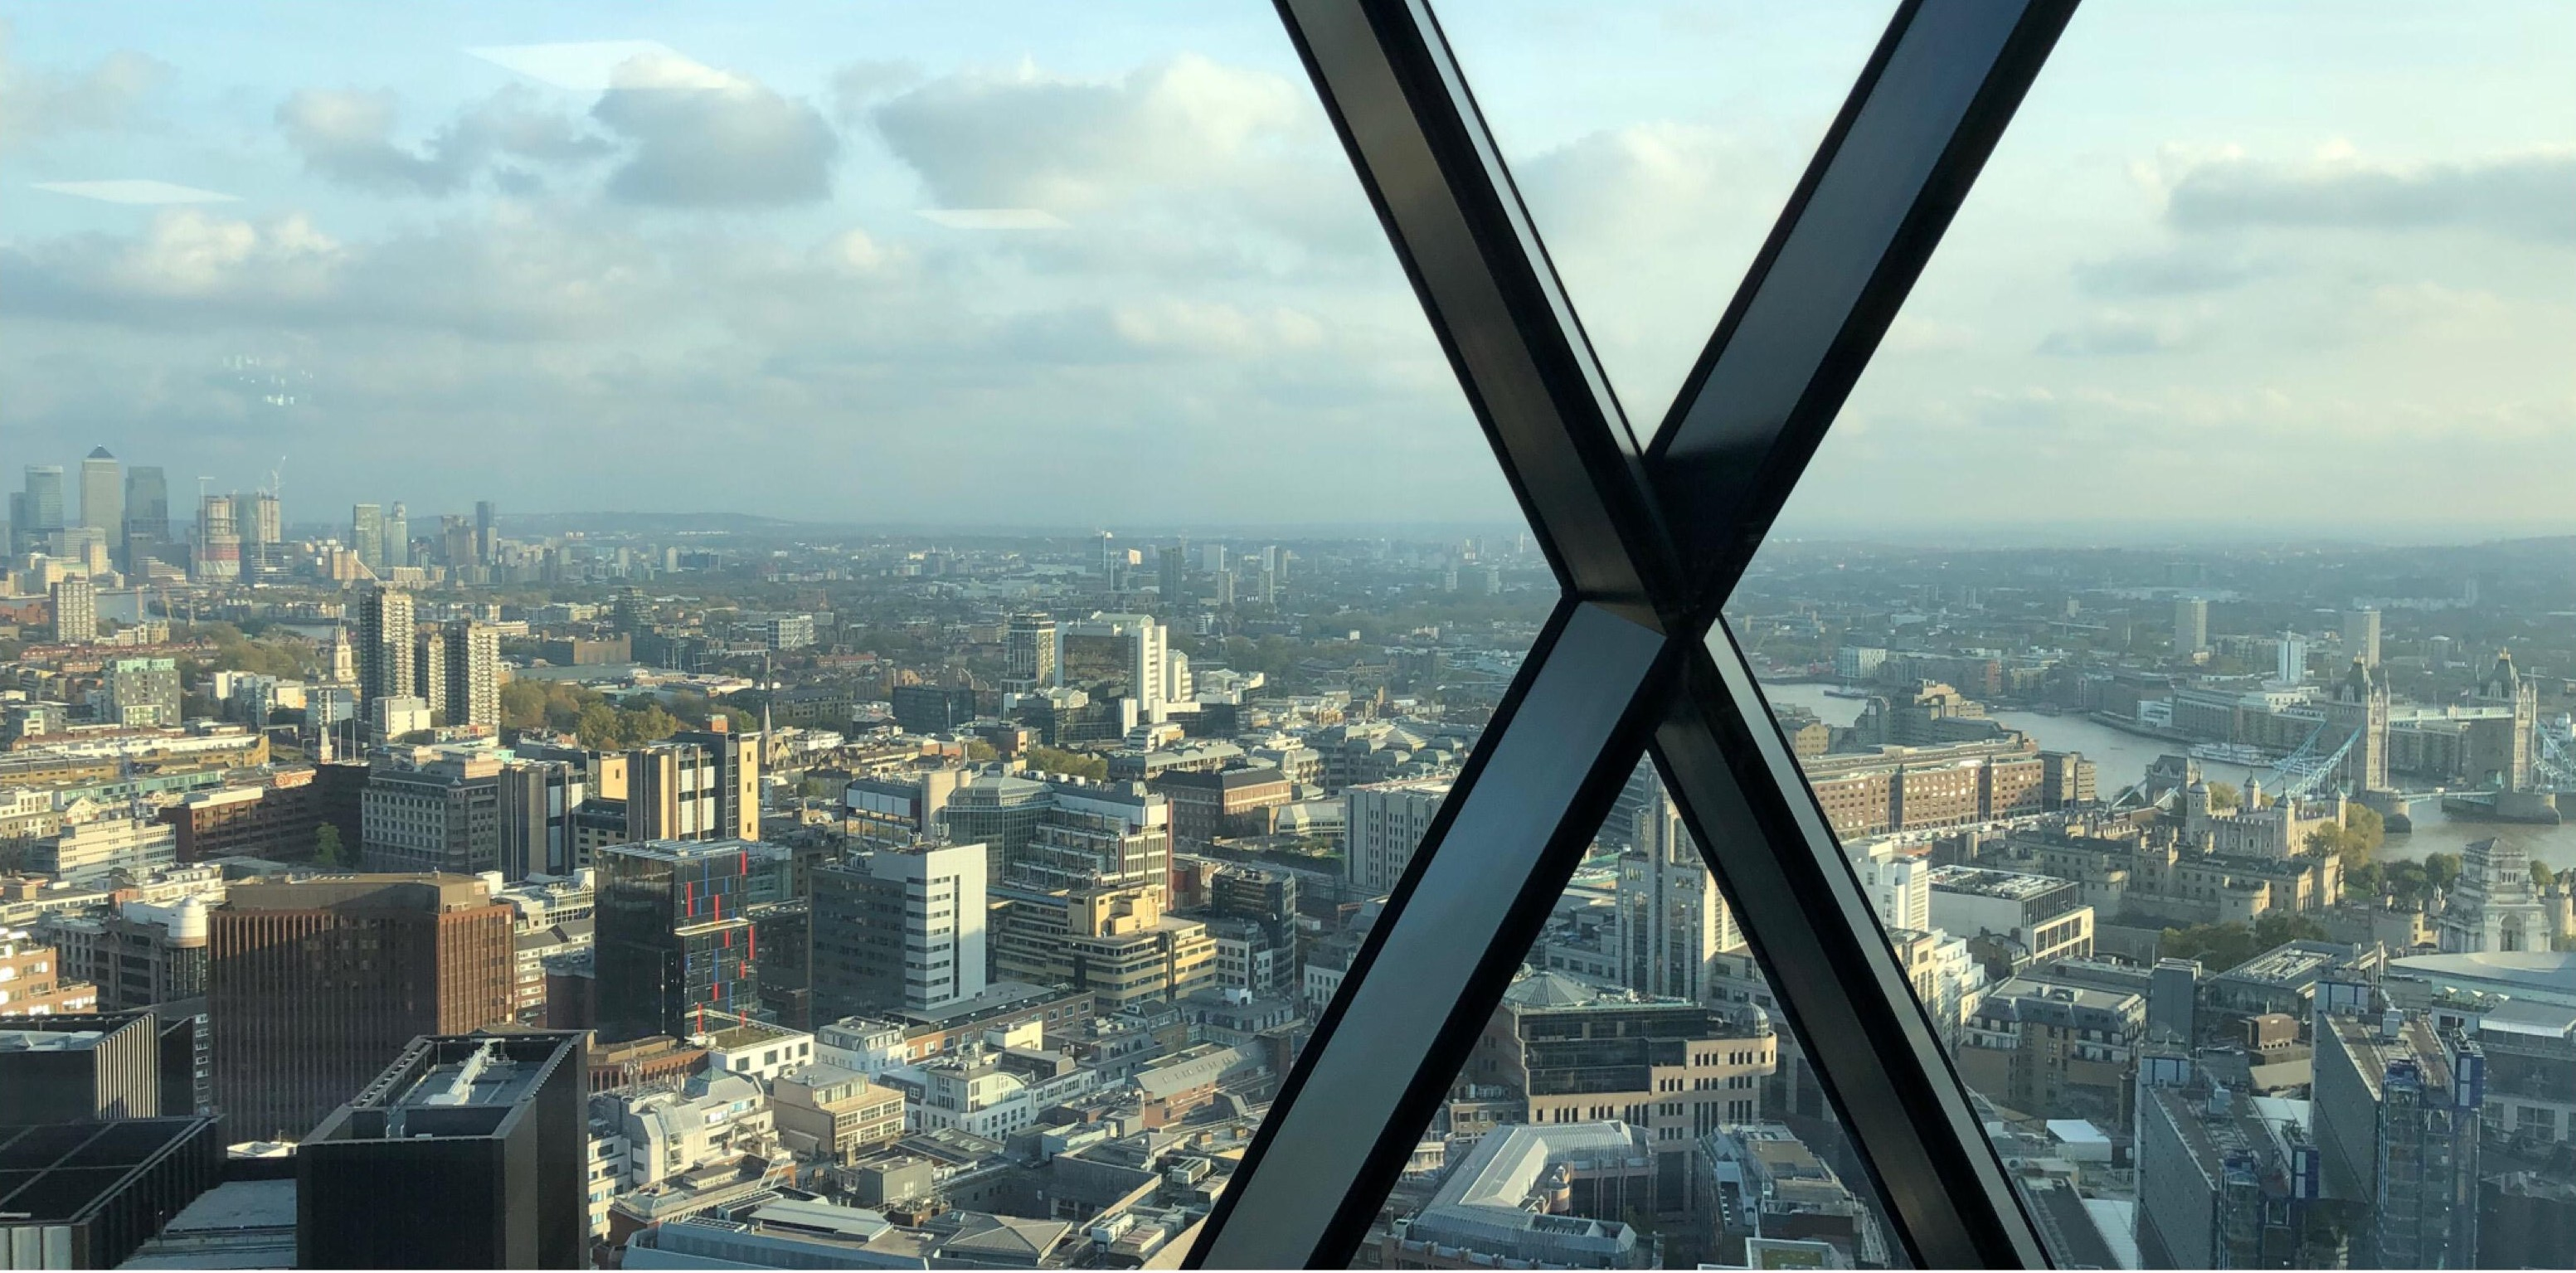 http://www.pexhurst.co.uk/wp-content/uploads/2017/11/Gherkin-view.jpg